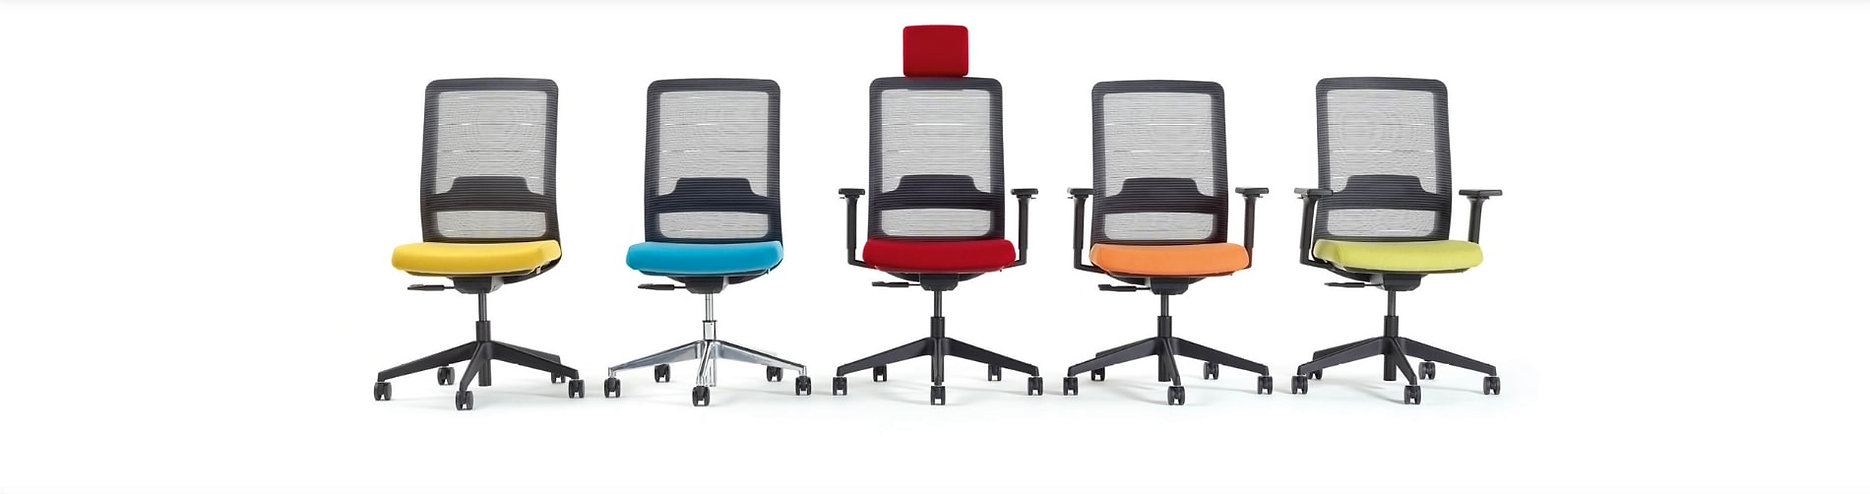 Comfy Office Reading - Mesh Chairs